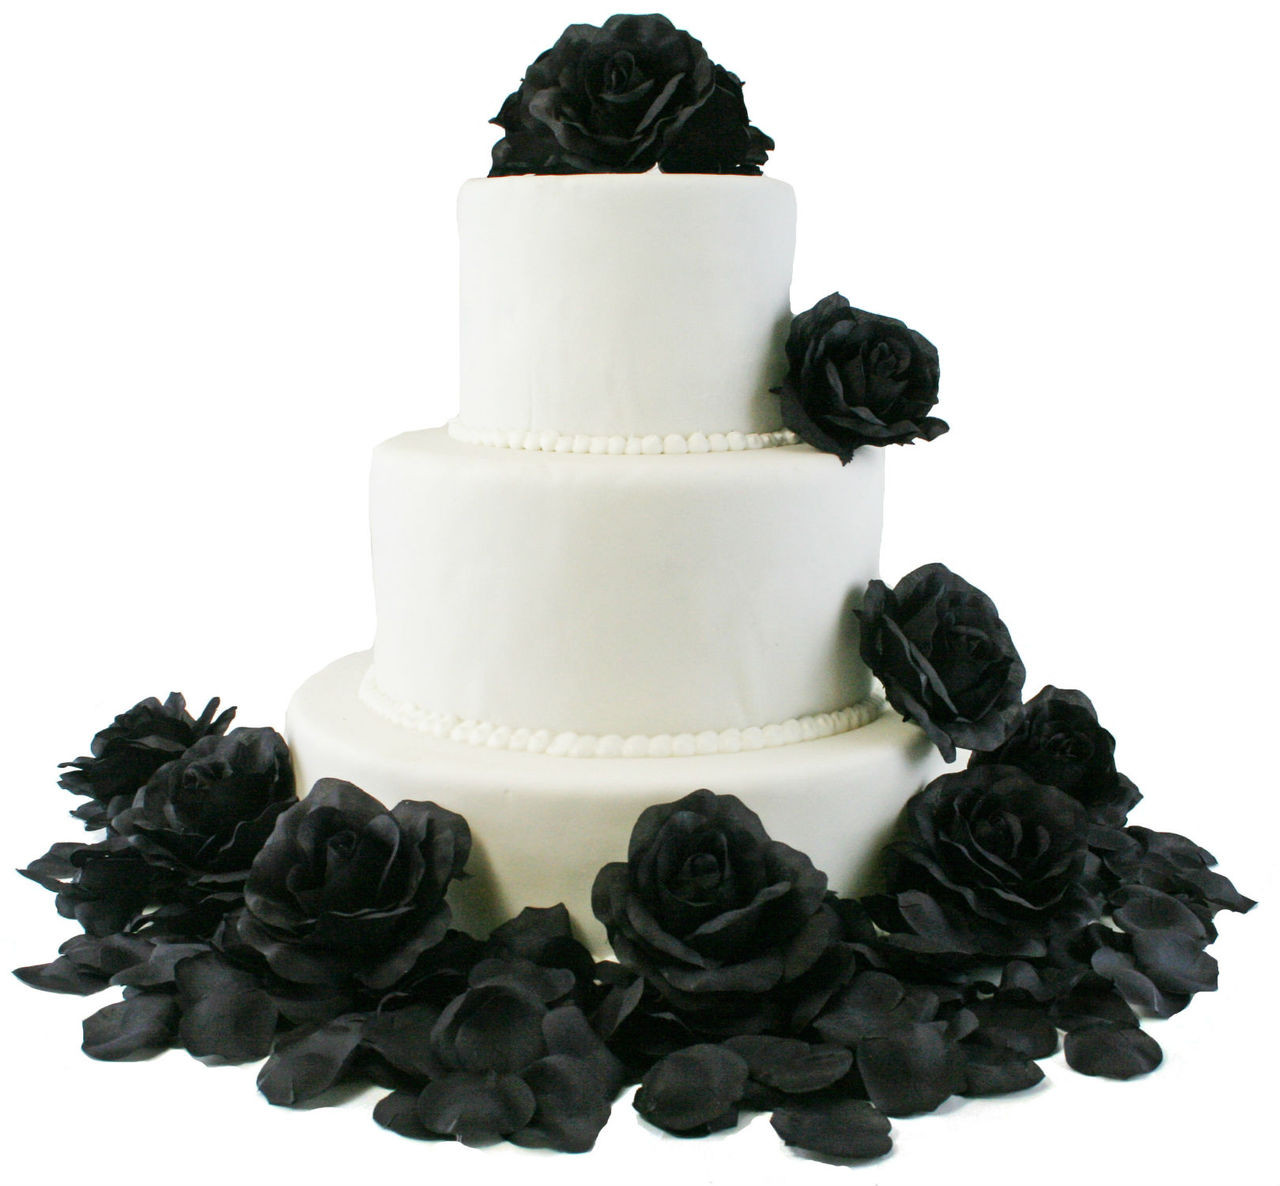 Black Rose Flower Cake Toppers Silk Flowers For Cake Wedding Cake Flowers Decorations Beautiful Wedding Cakes With Flowers